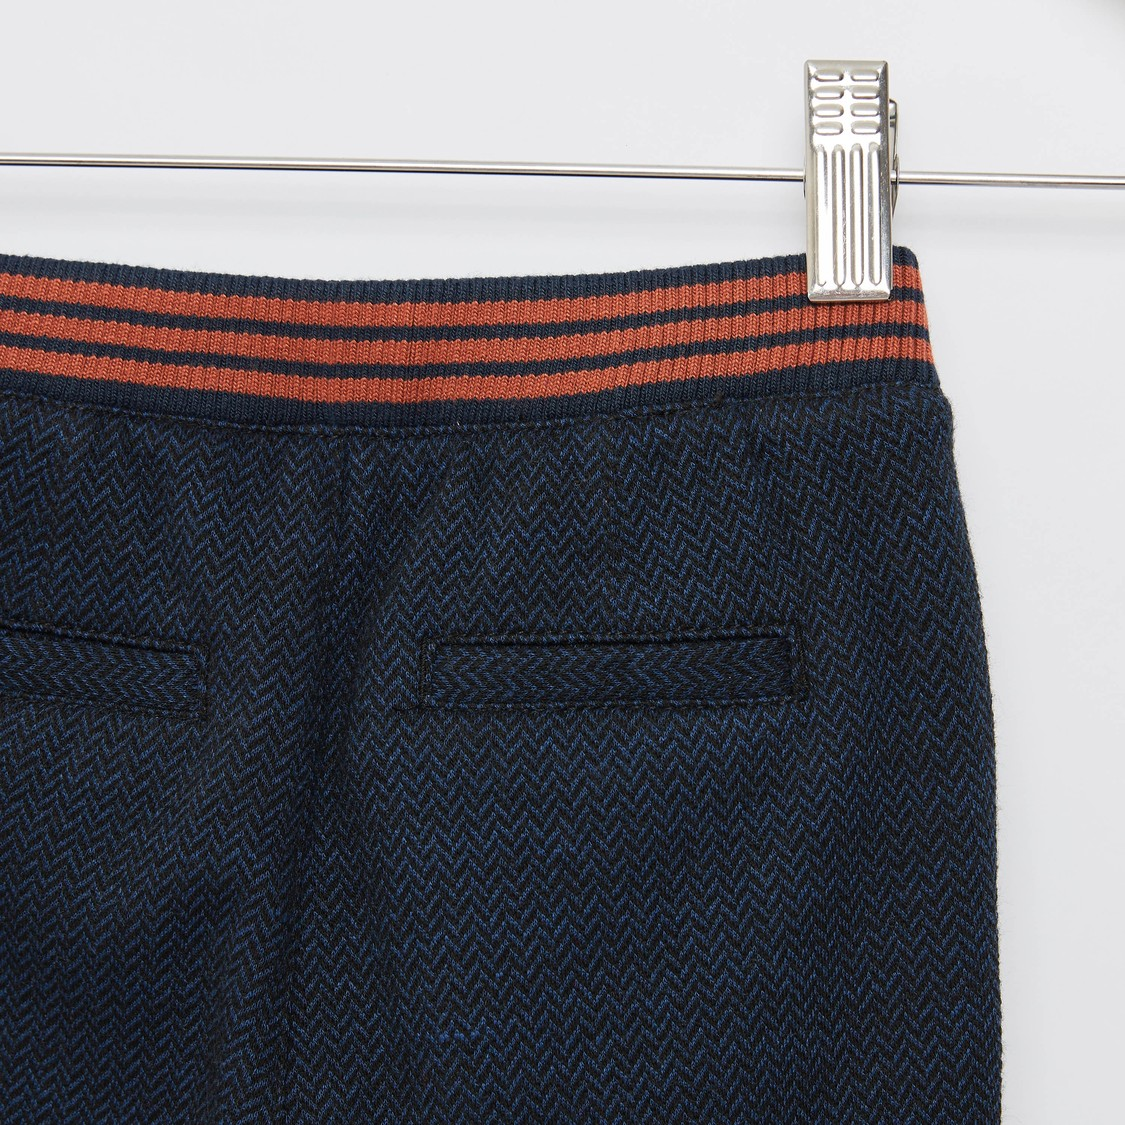 Textured Pants with Pockets and Elasticised Waistband